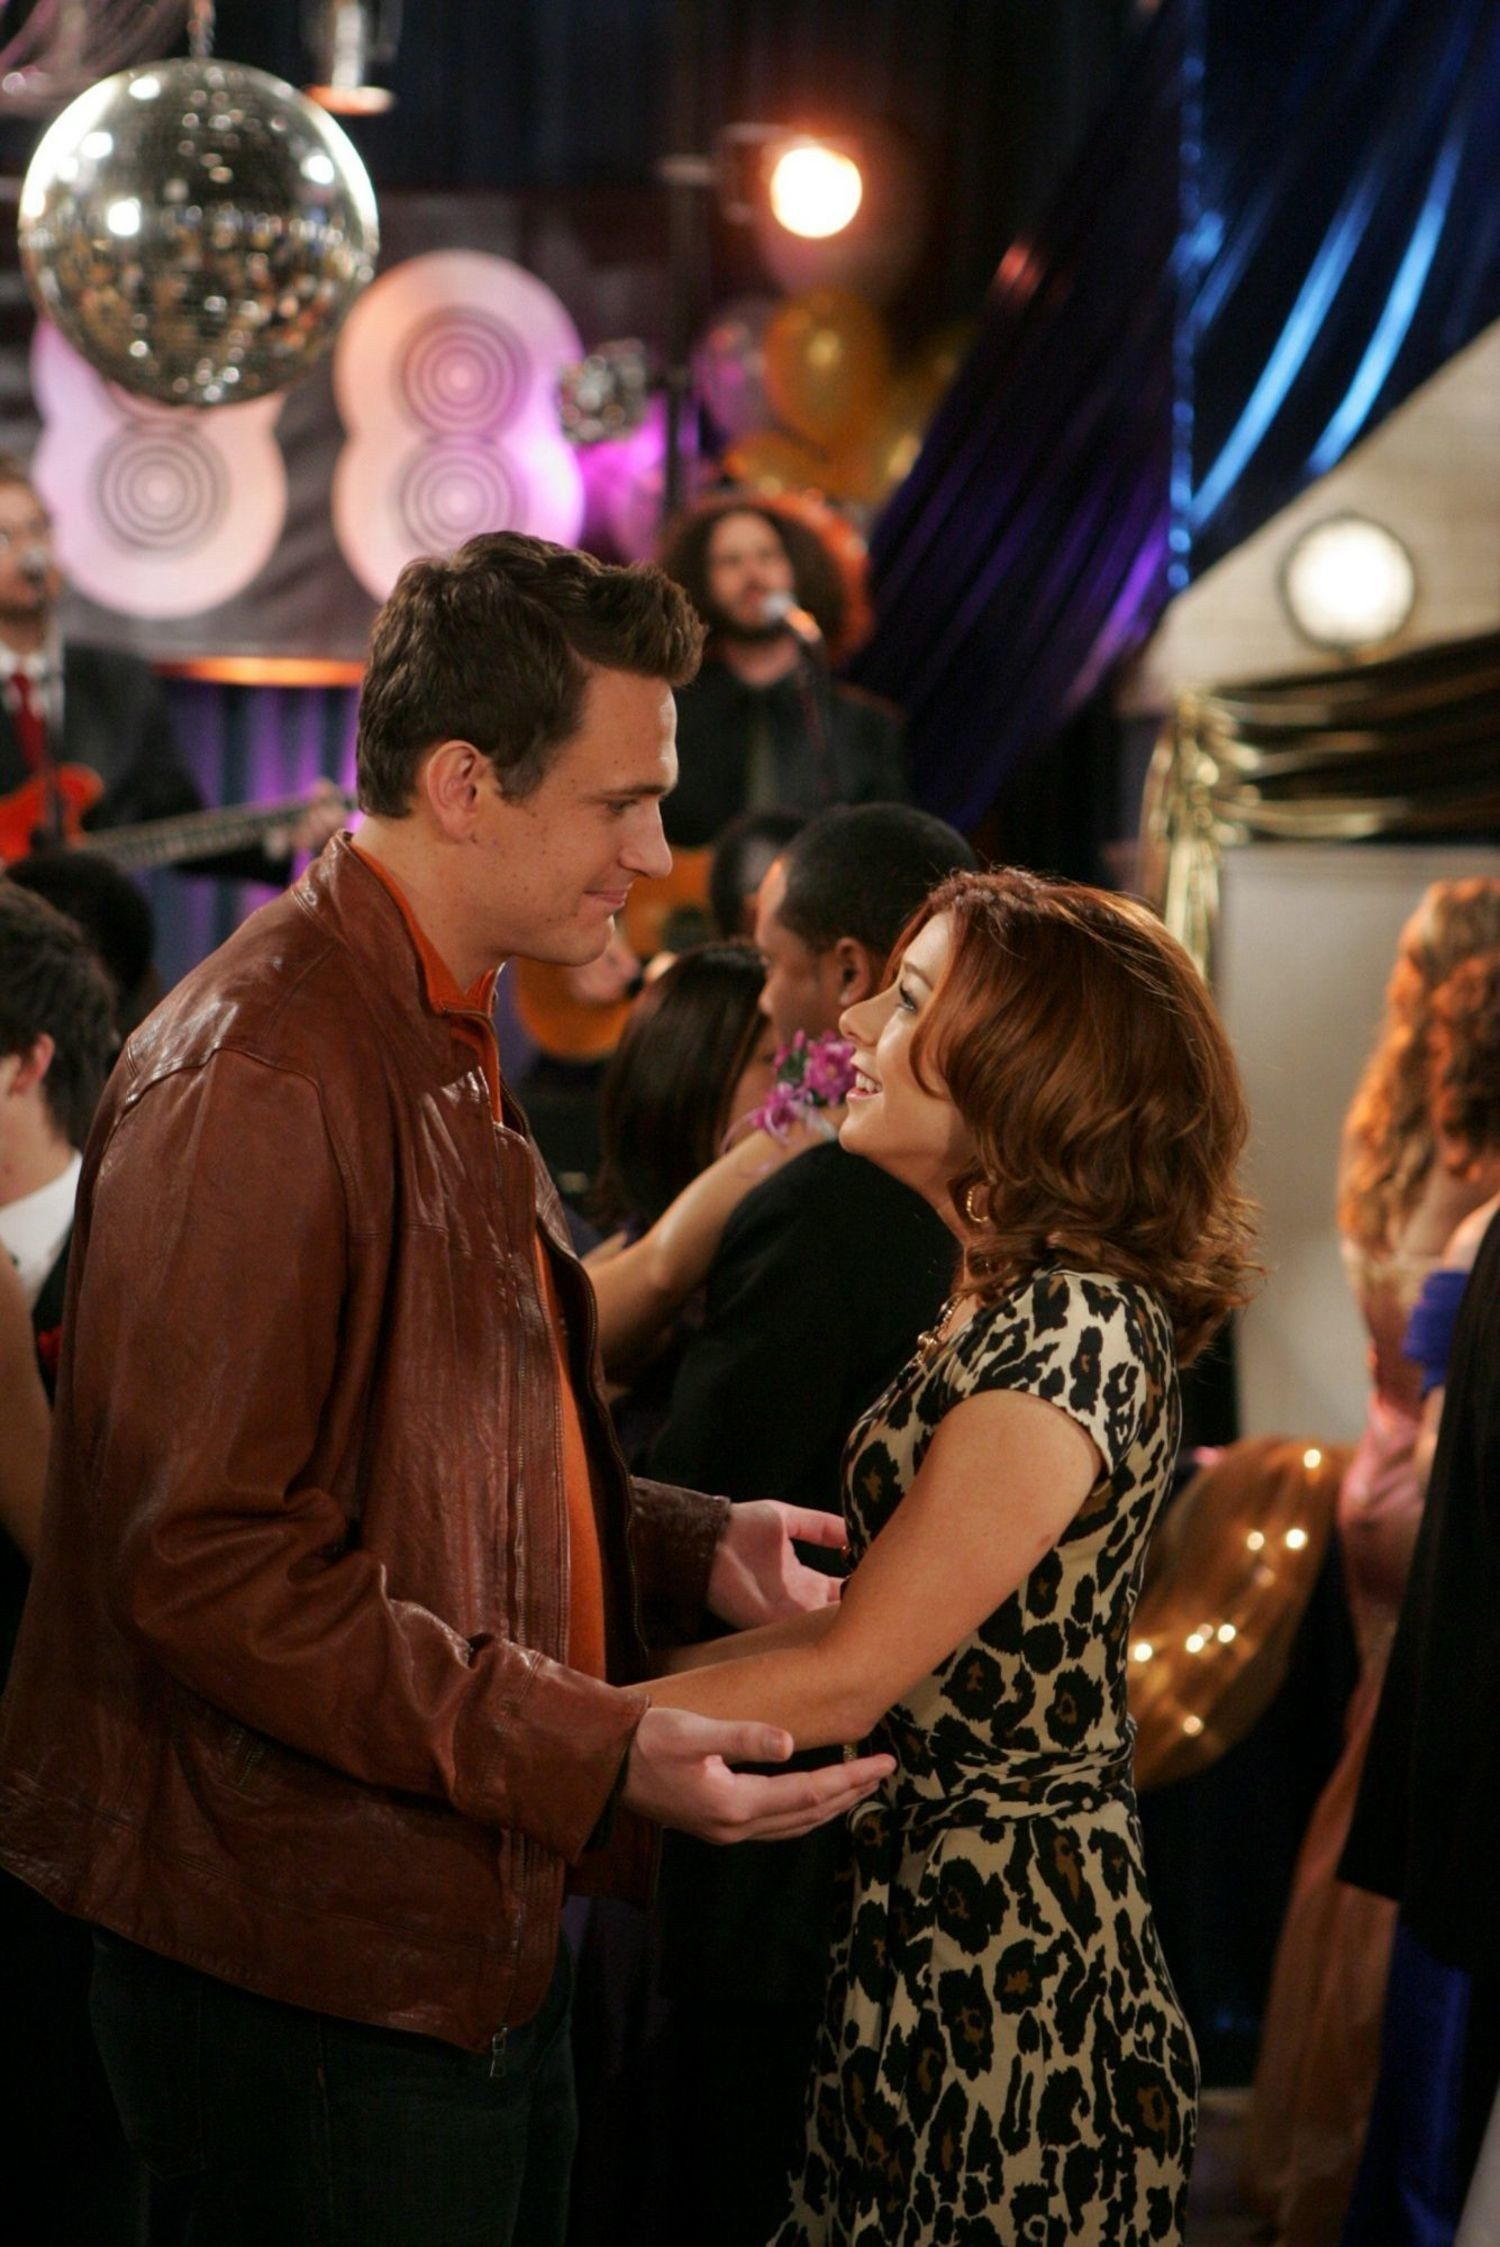 36 Reasons How I Met Your Mother's Marshall and Lily Have the Greatest Relationship Ever #talk